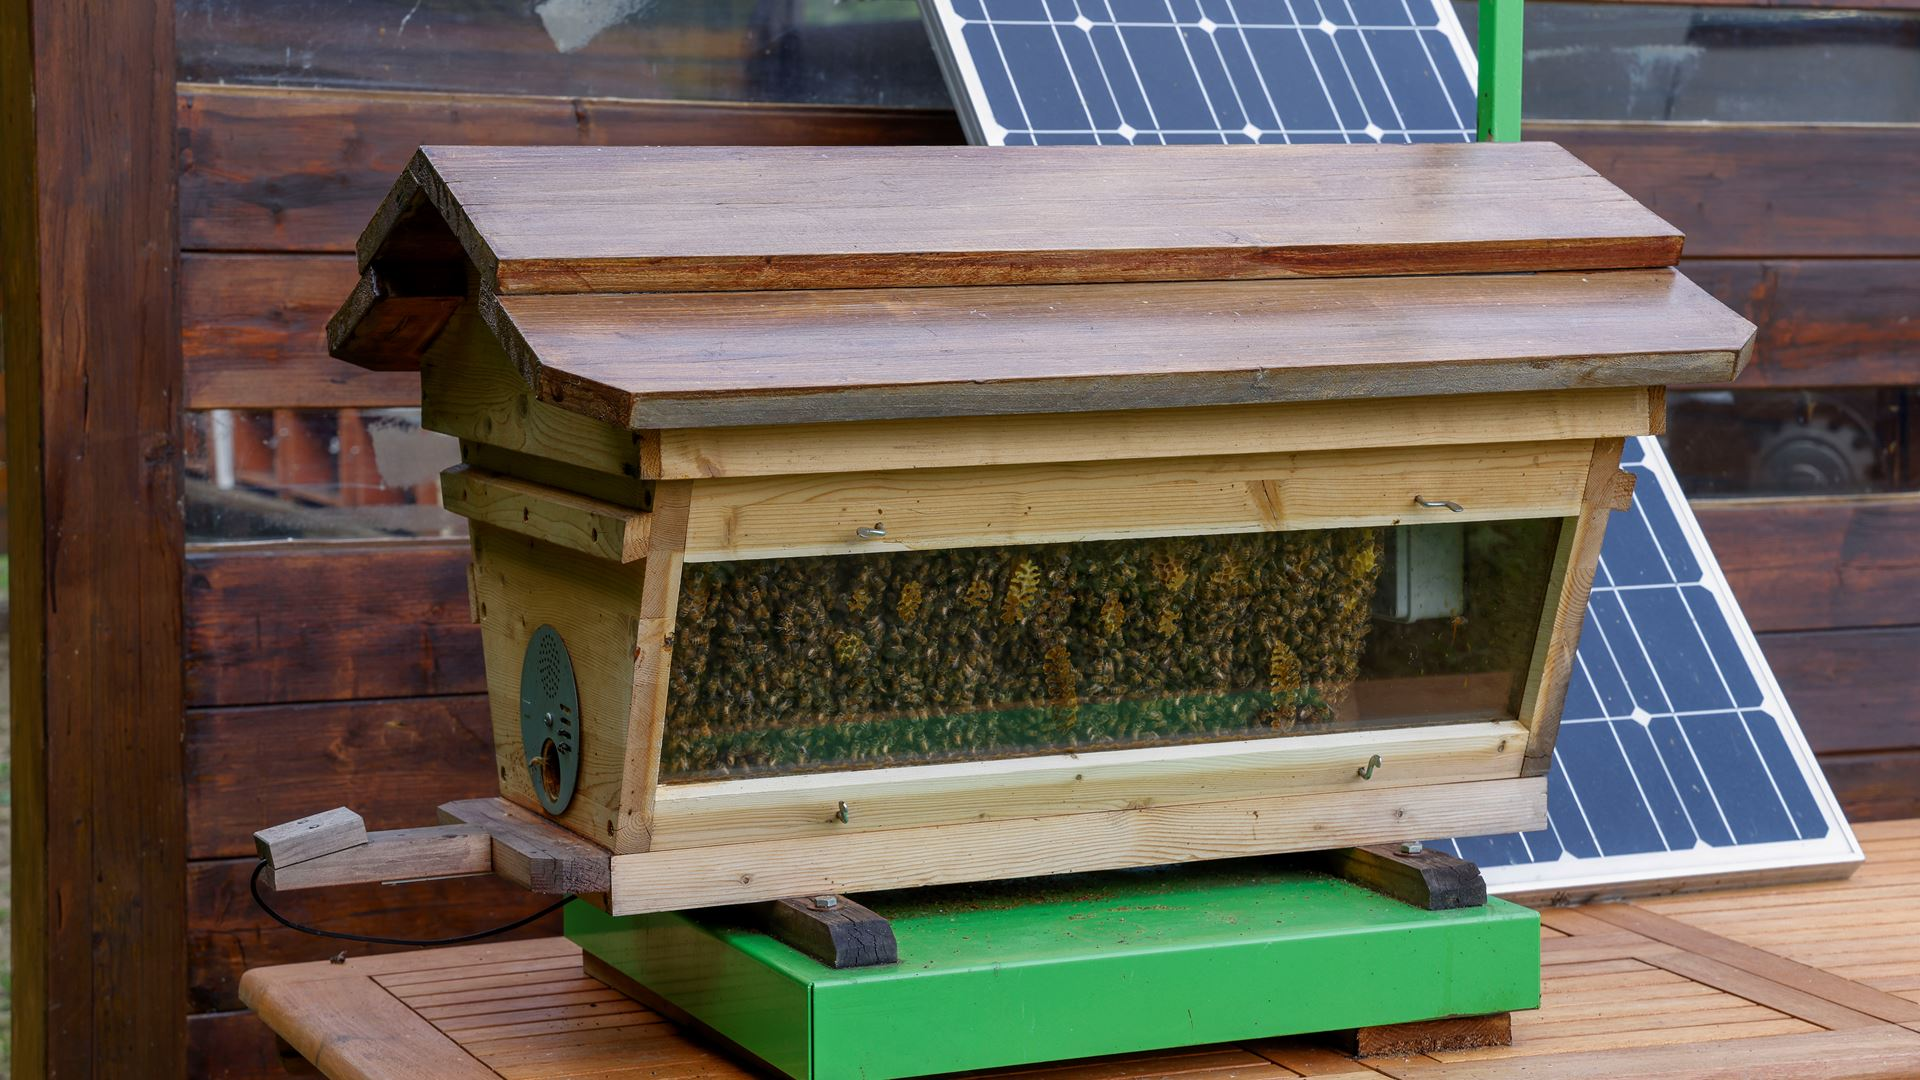 May 20, World Bee Day: Since 2016 Lamborghini has worked with bees in an environmental biomonitoring project - Image 4